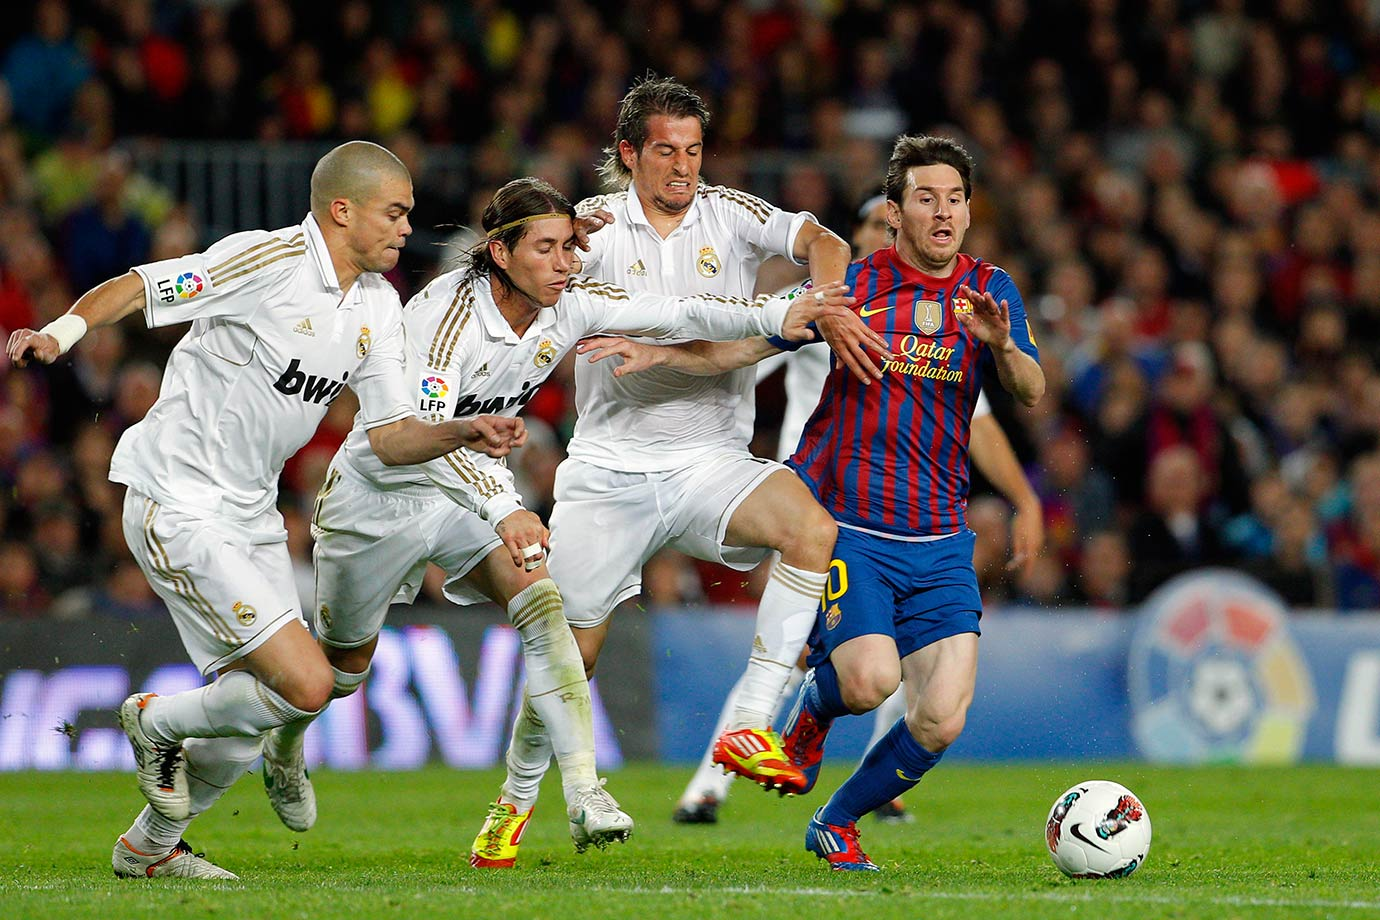 Barcelona's Lionel Messi duels for the ball with Real Madrid's Pepe, Sergio Ramos and Fabio Coentrao during their La Liga match on April 21, 2012 at the Camp Nou stadium in Barcelona, Spain.